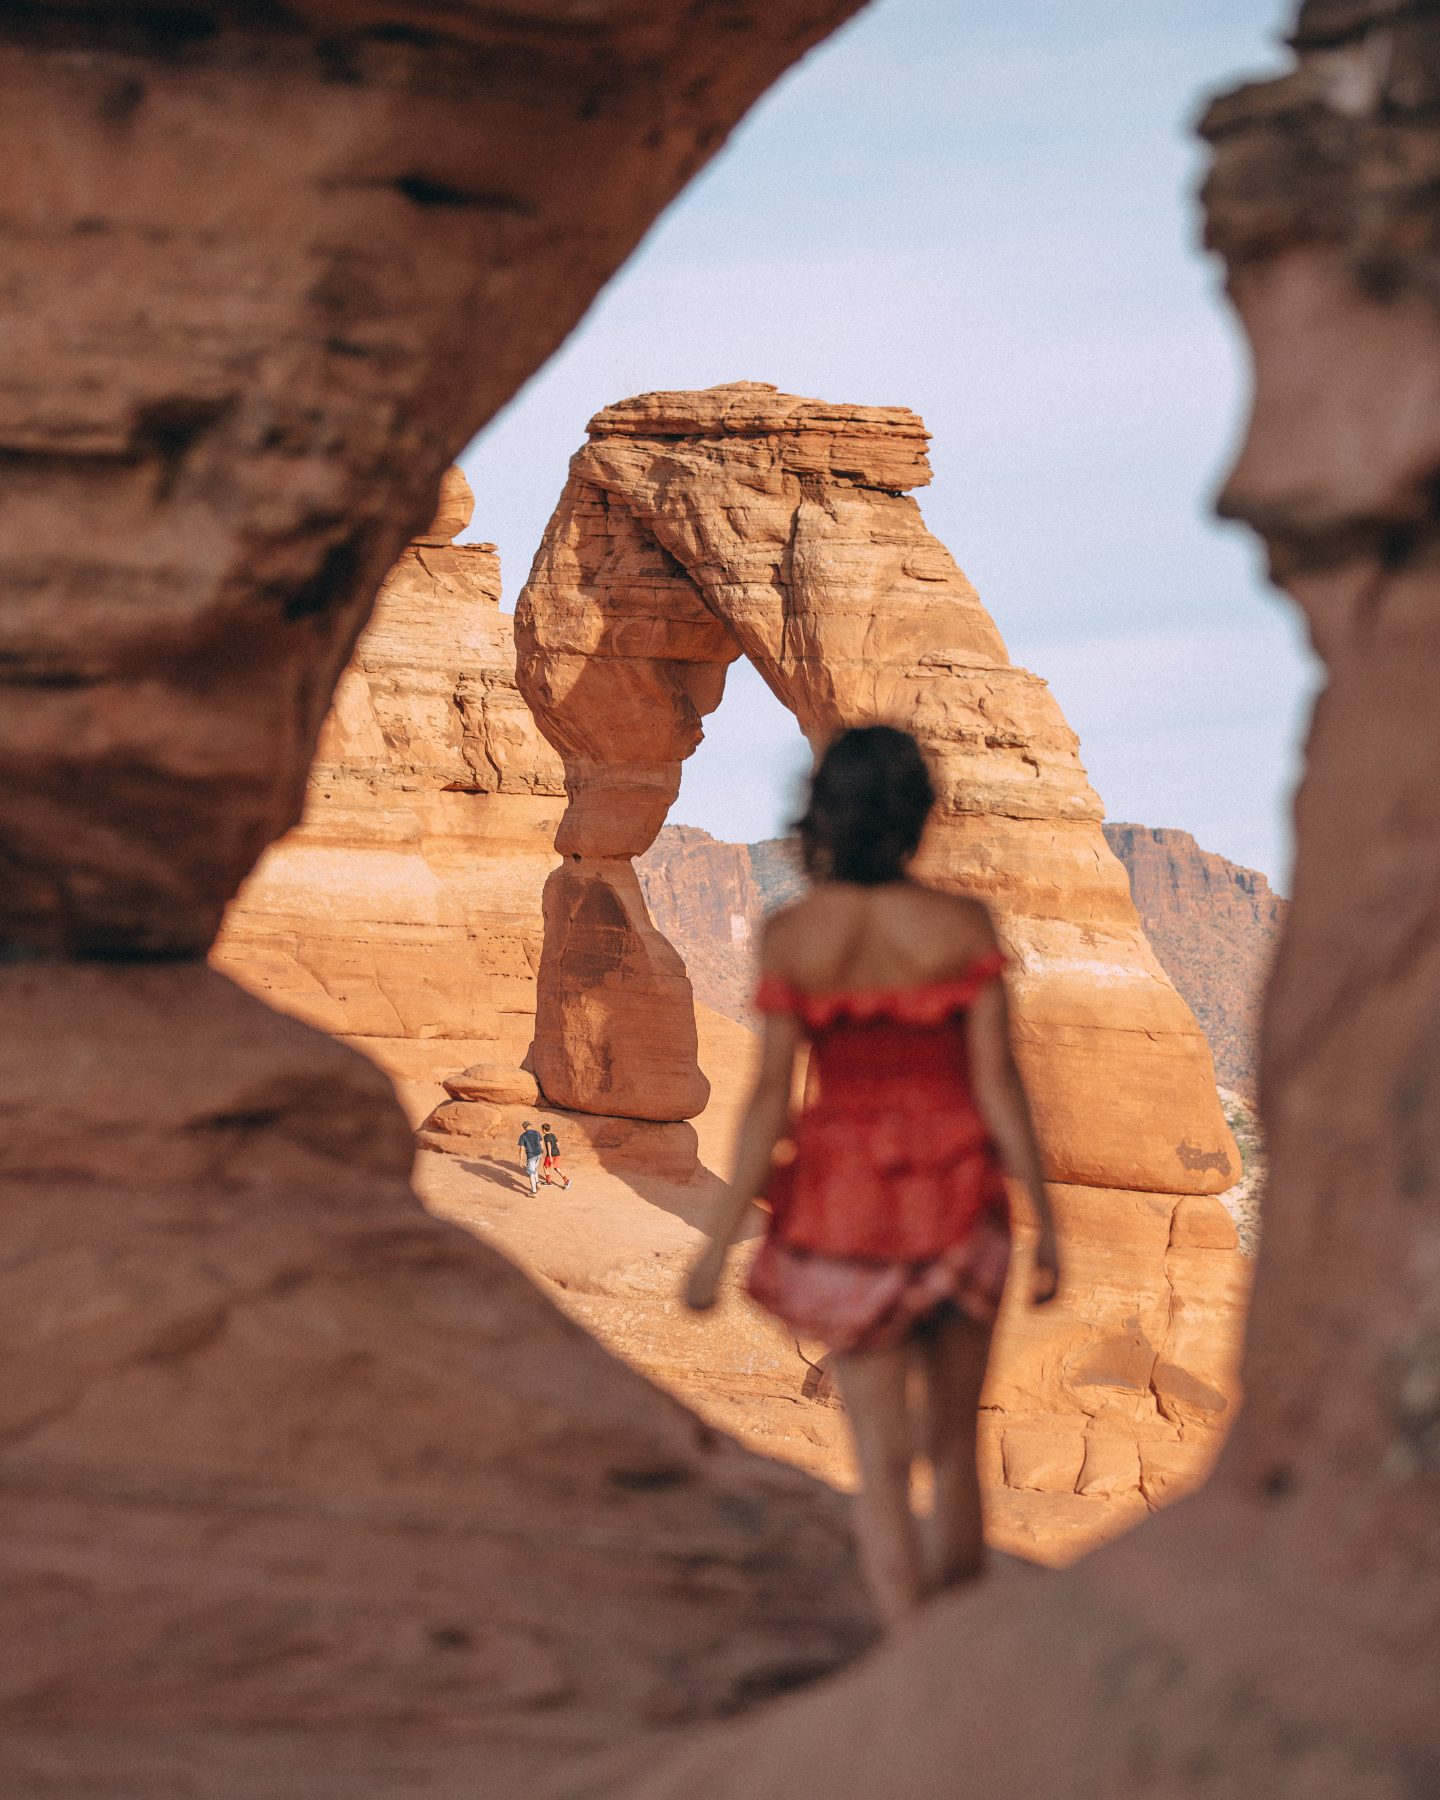 Lisa Homsy at Delicate Arch in Arches National Park